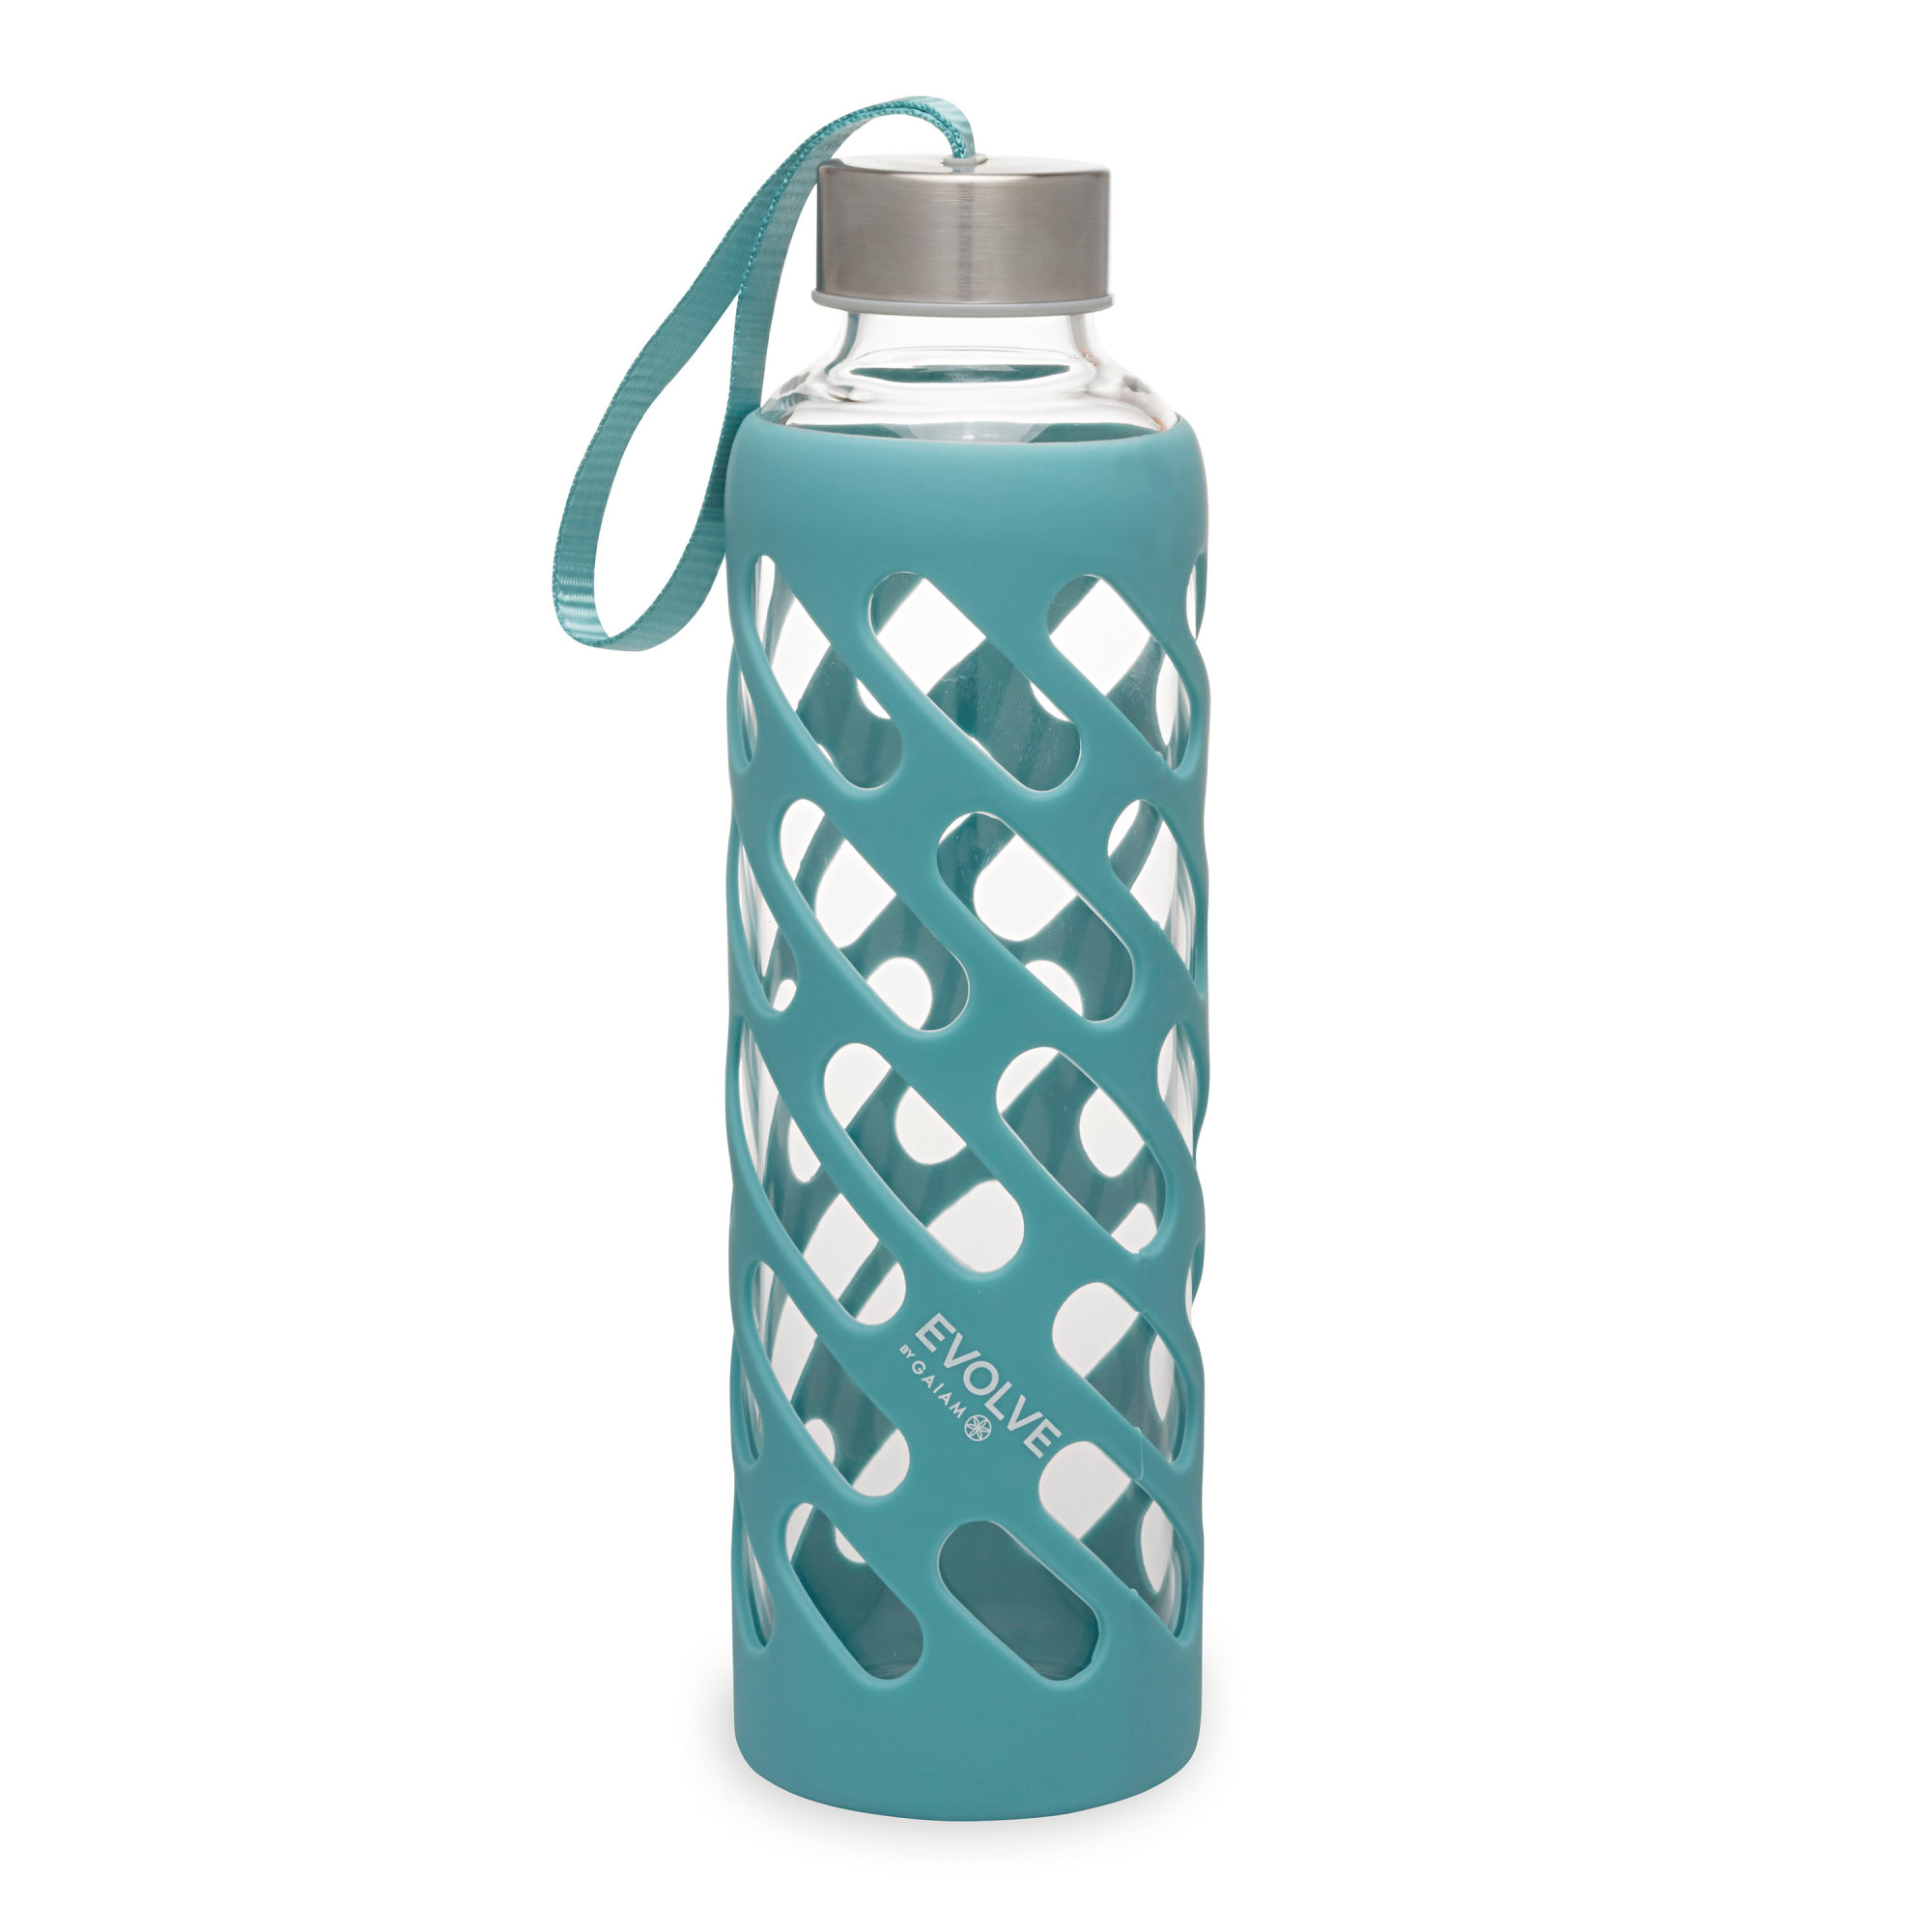 Evolve By Gaiam Sure Grip Glass Water Bottle With Silicone Sleeve Viridian Blue 20oz Walmart Com Walmart Com